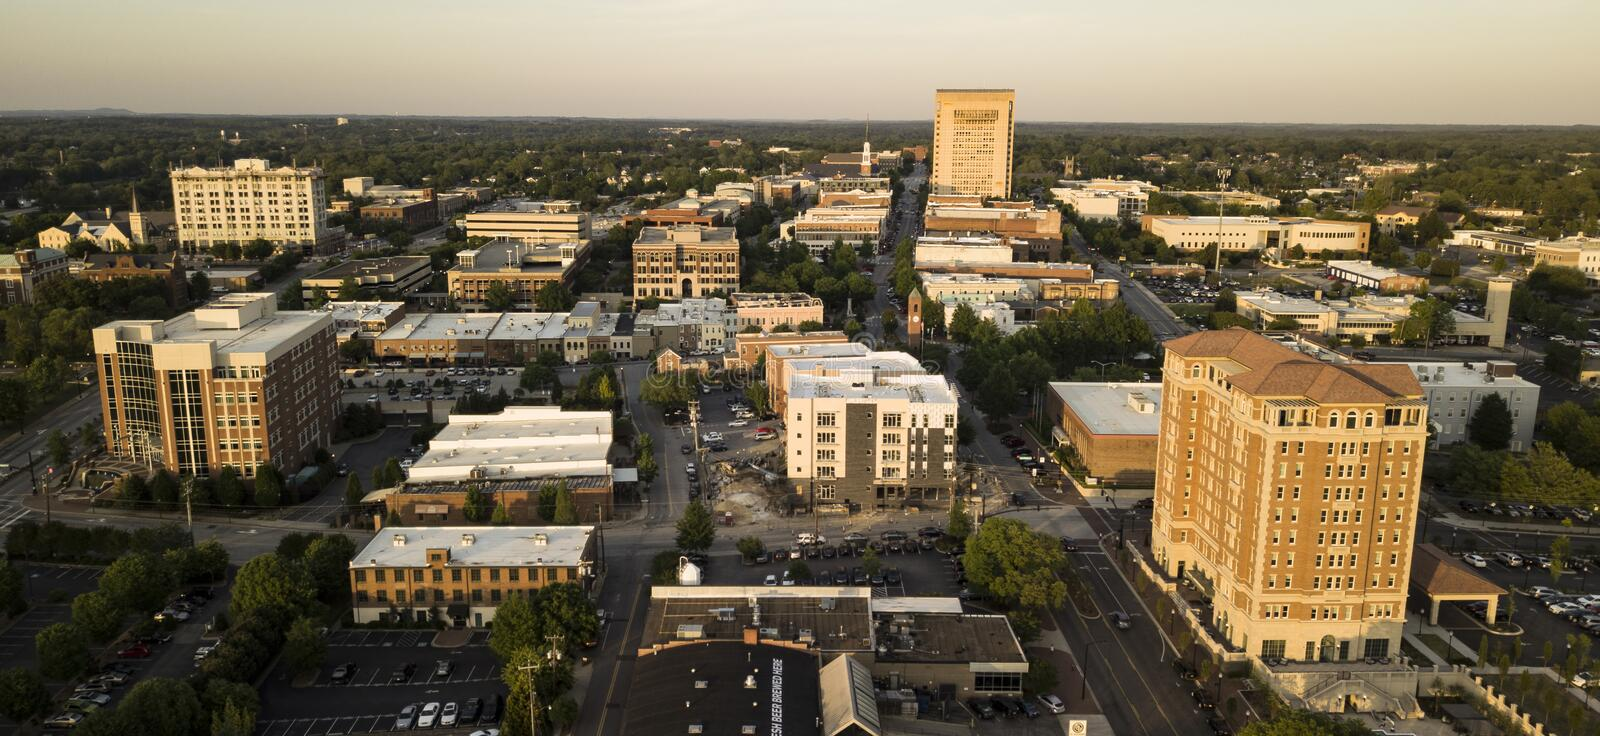 Aerial View Over the Downtown City Skyline and Buildings of Spartanburg. Late afternoon light hits the buildings of downtown Spartanburg North Carolina royalty free stock images